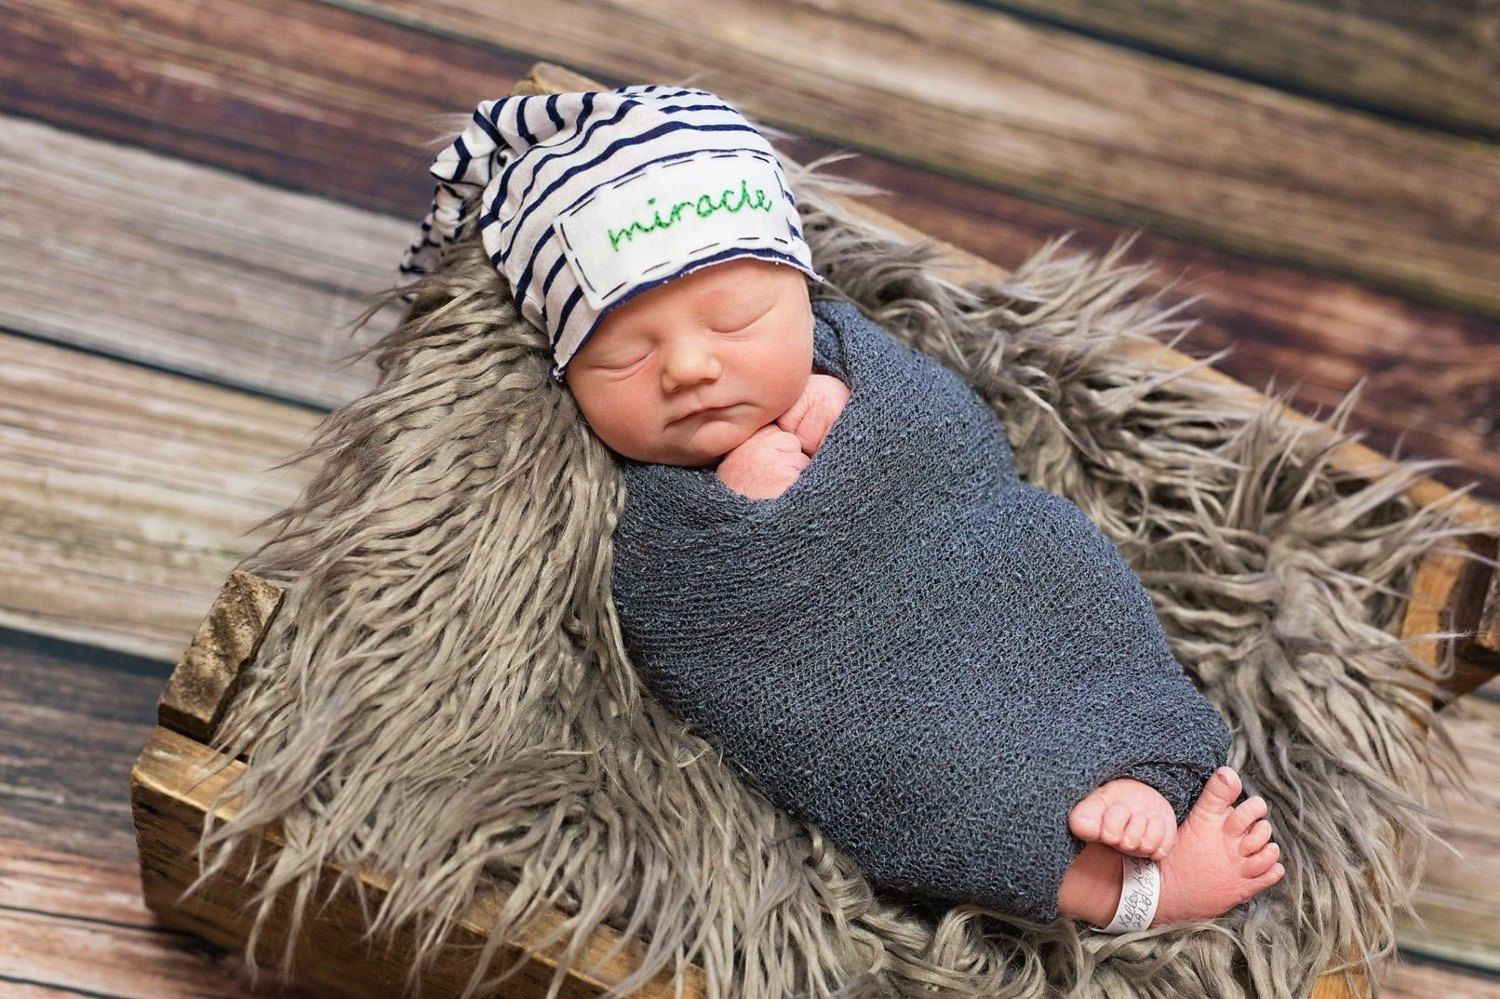 Personalized newborn hat -hand stitched name - personalize baby gift ... 144dff205c3